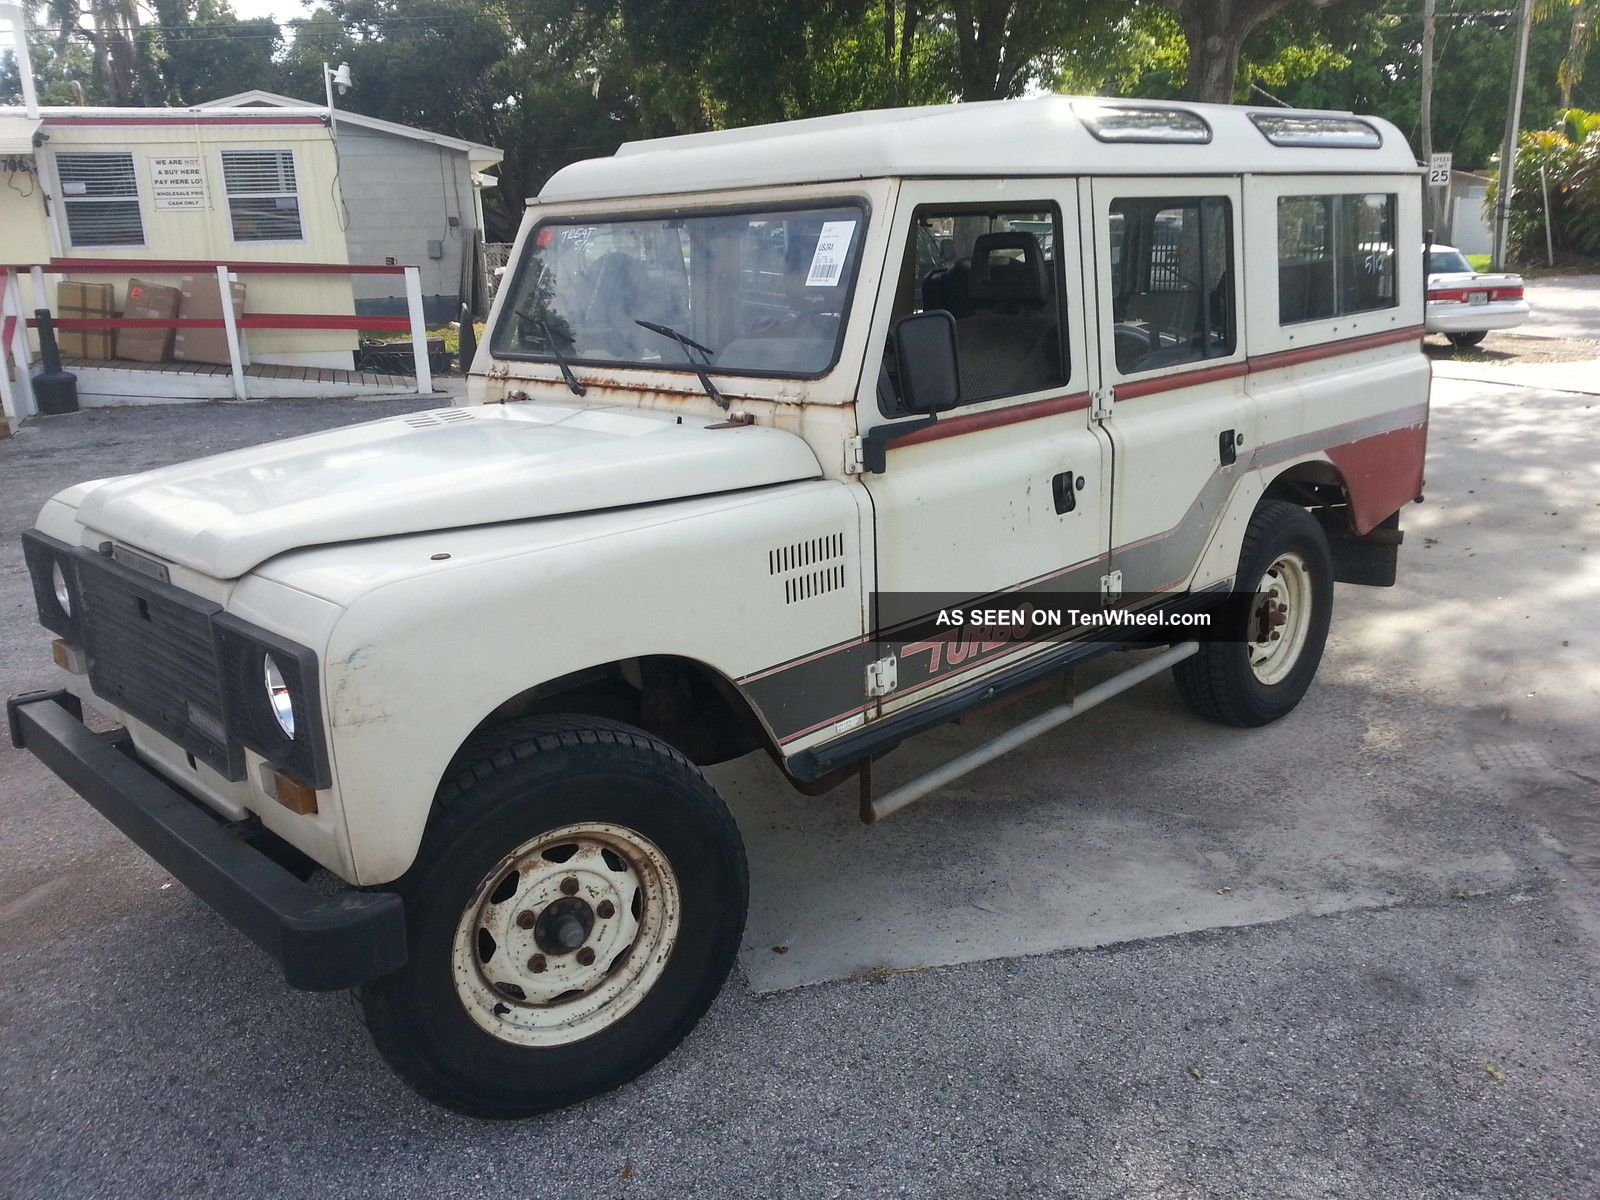 1984 Landrover Land - Rover Land Rover Santana 109 110 Turbo Diesel Landy 1982 Defender photo